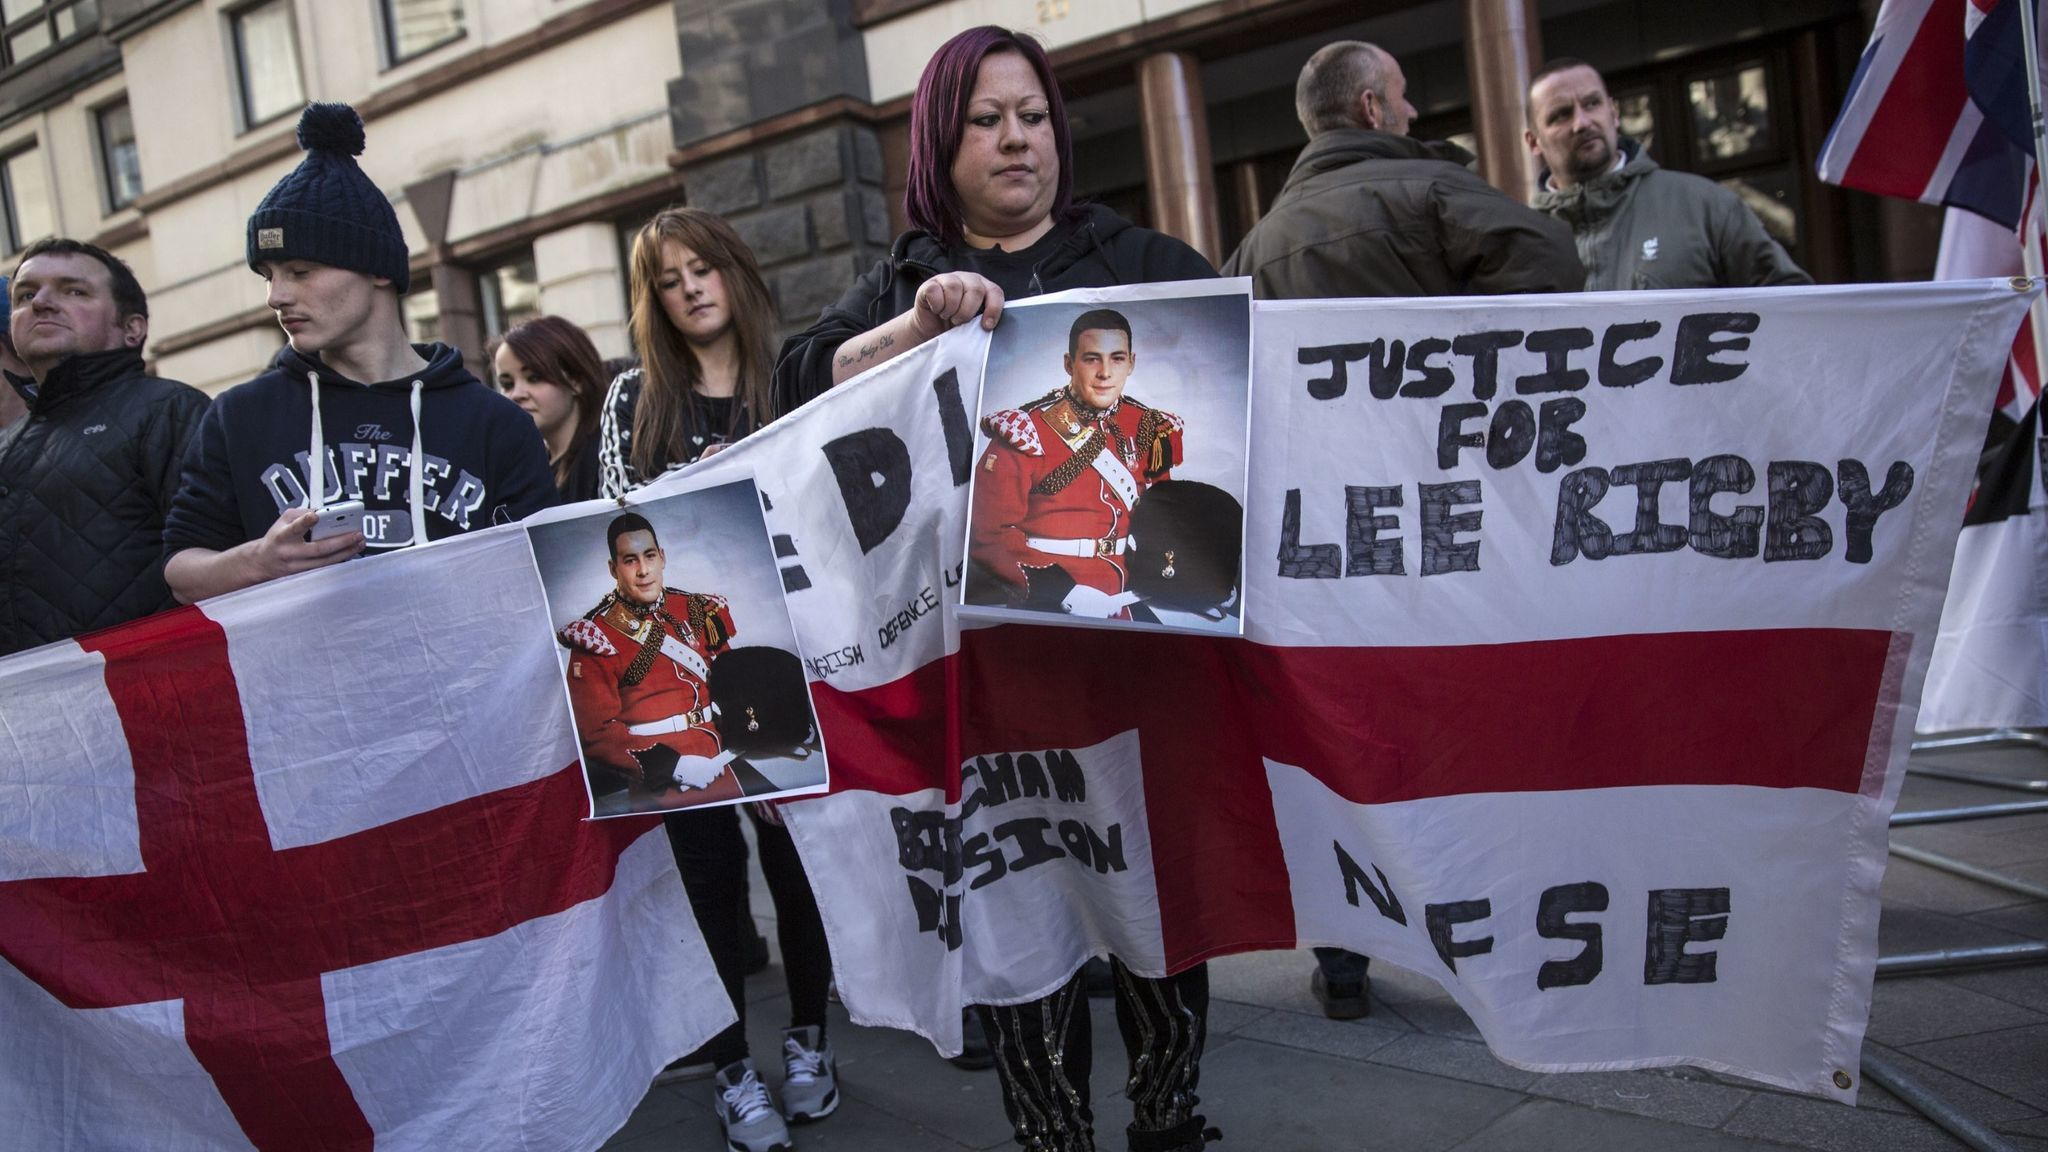 Protesters demonstrate outside the Old Bailey courthouse in London before the sentencing of Michael Adebolajo and Michael Adebowale, who were convicted of murdering British solider Lee Rigby.